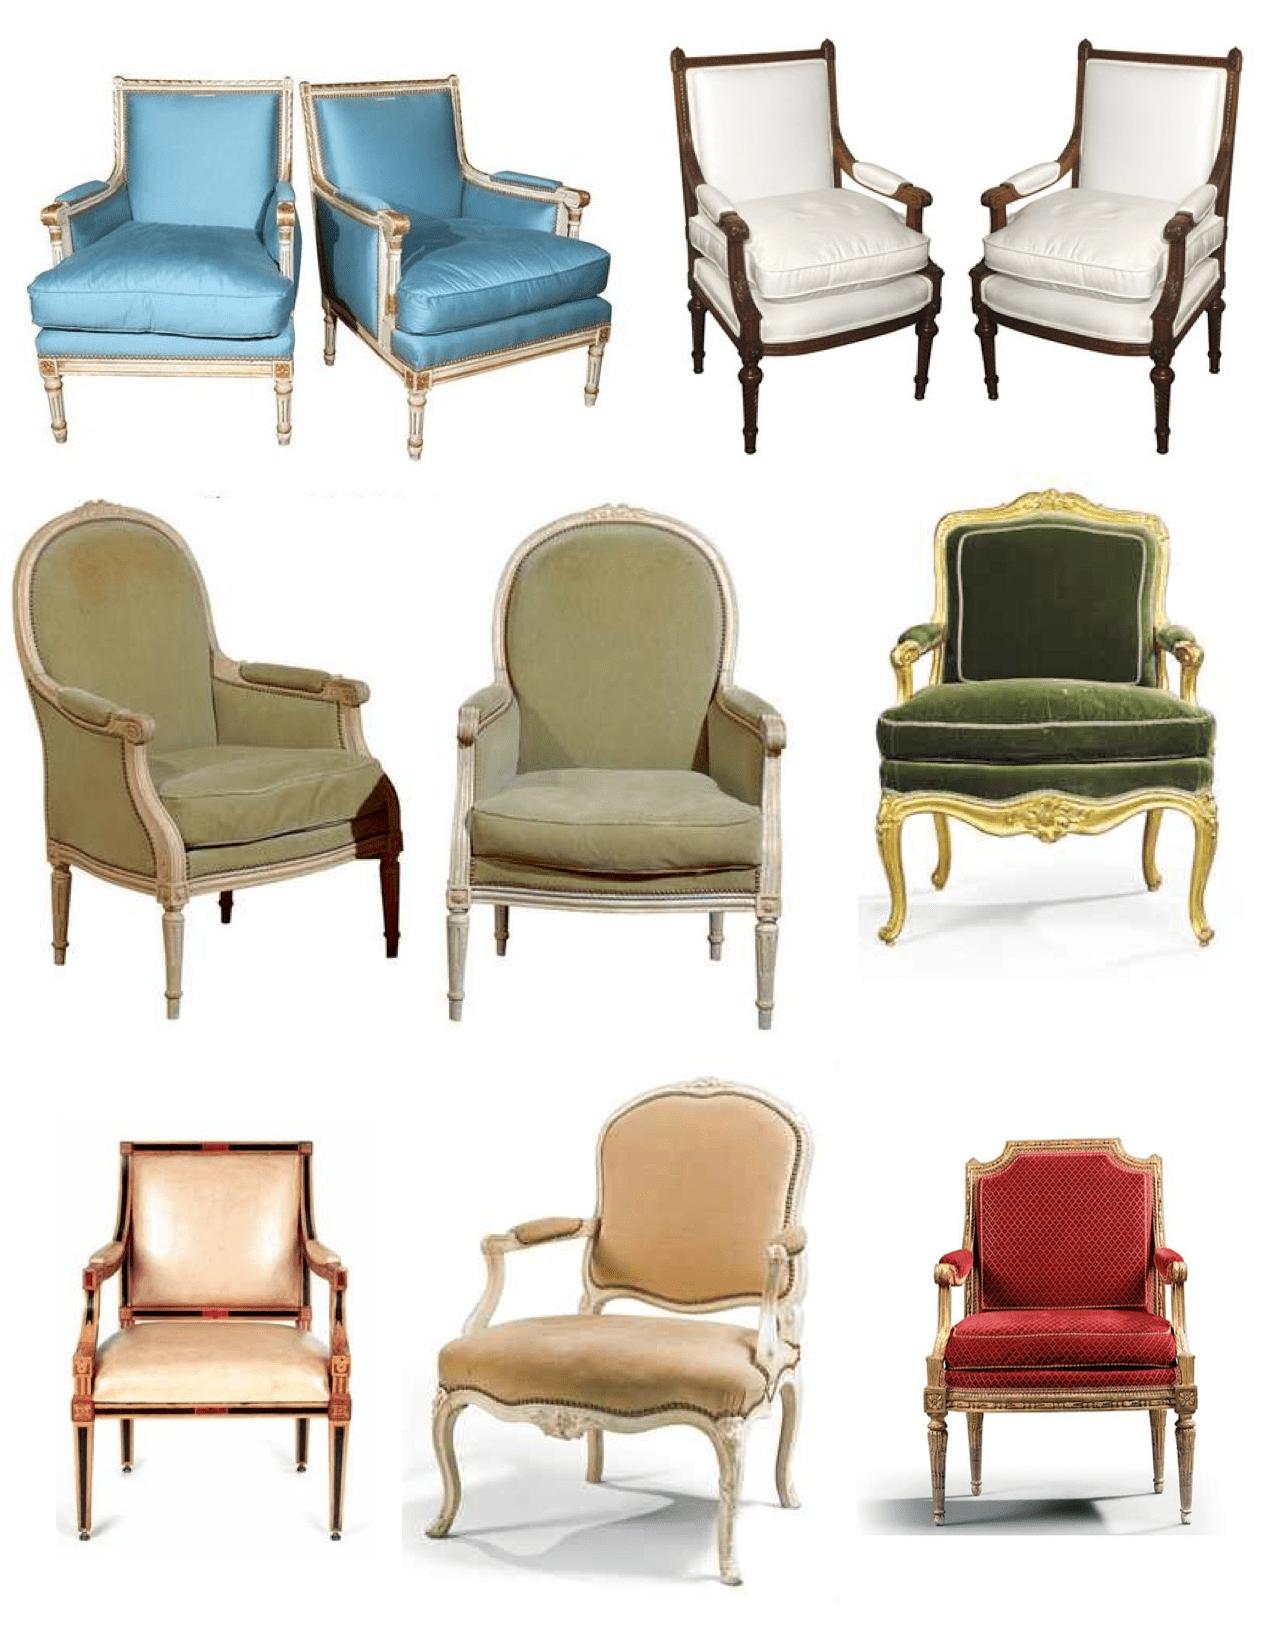 Styles Of Chairs French By Royal Design The Louis Fauteuil And Bergere